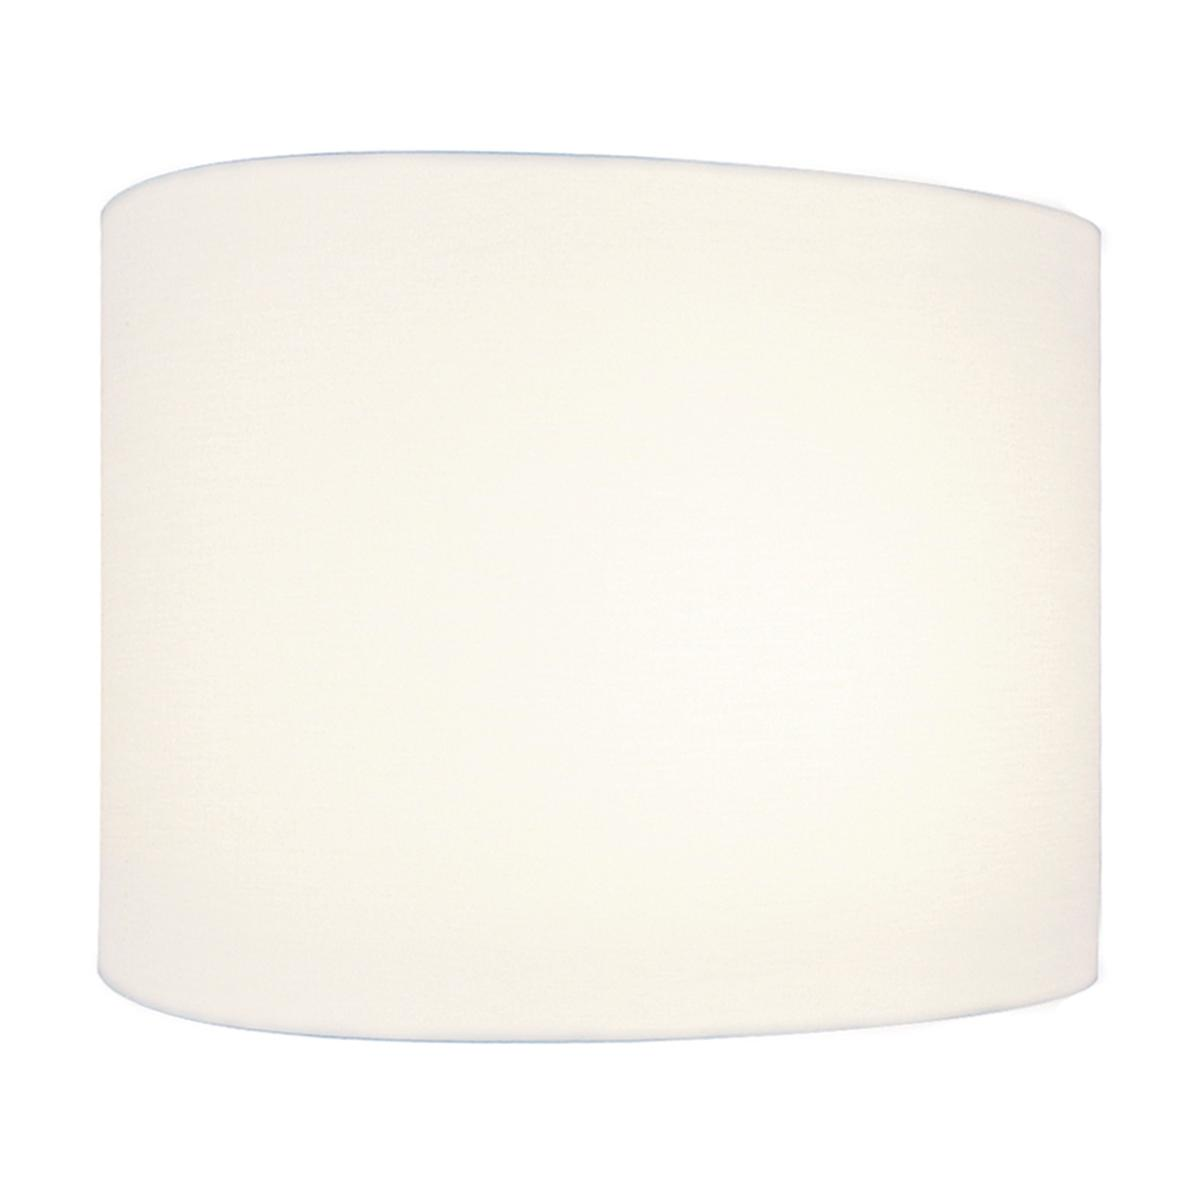 Dar S1019 Padova Cream Coloured Shade For Use With The Padova Wall Light